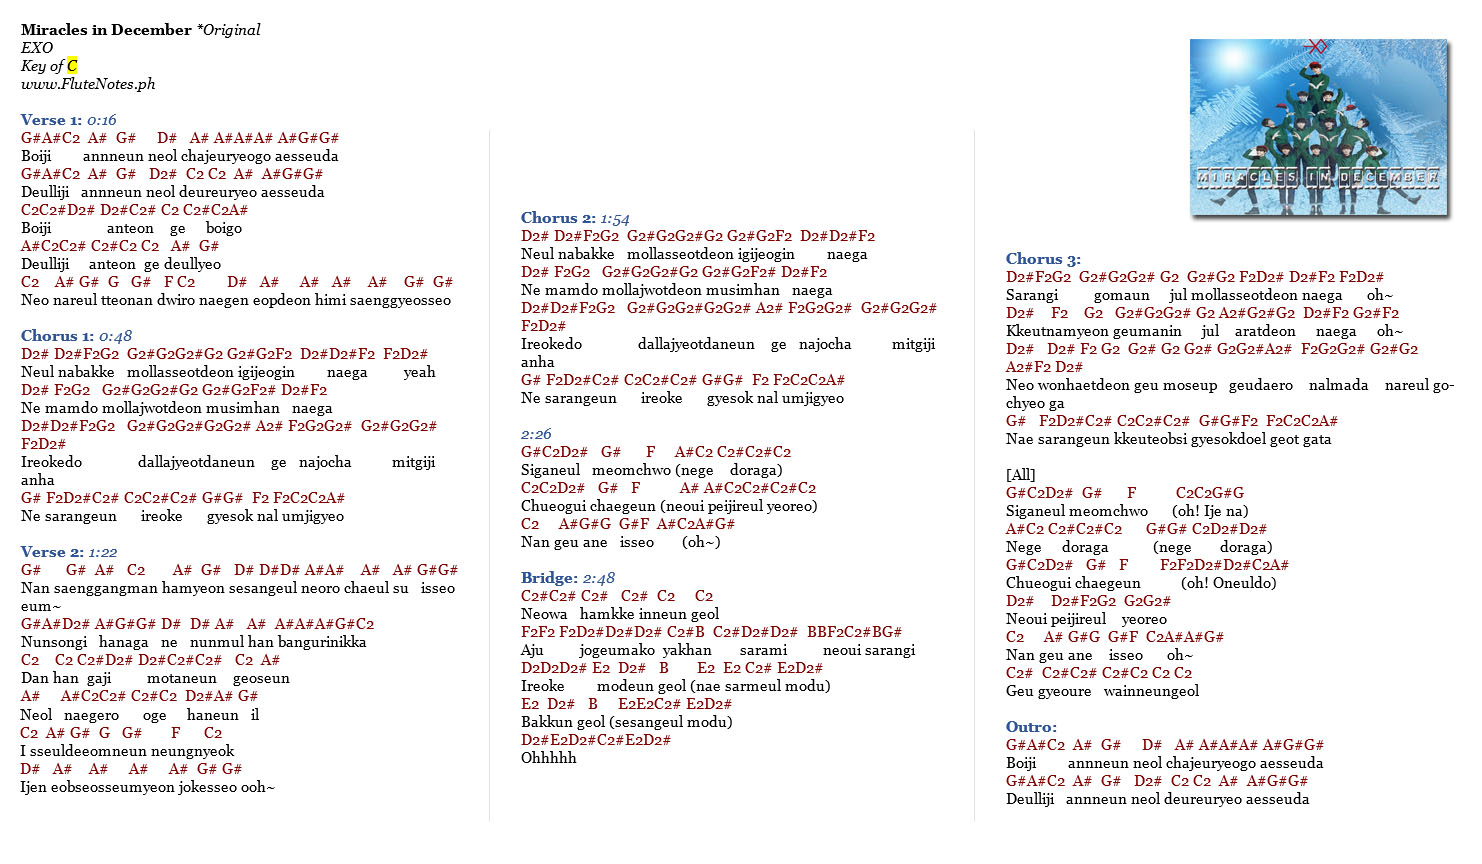 Miracles in December EXO Original Notes